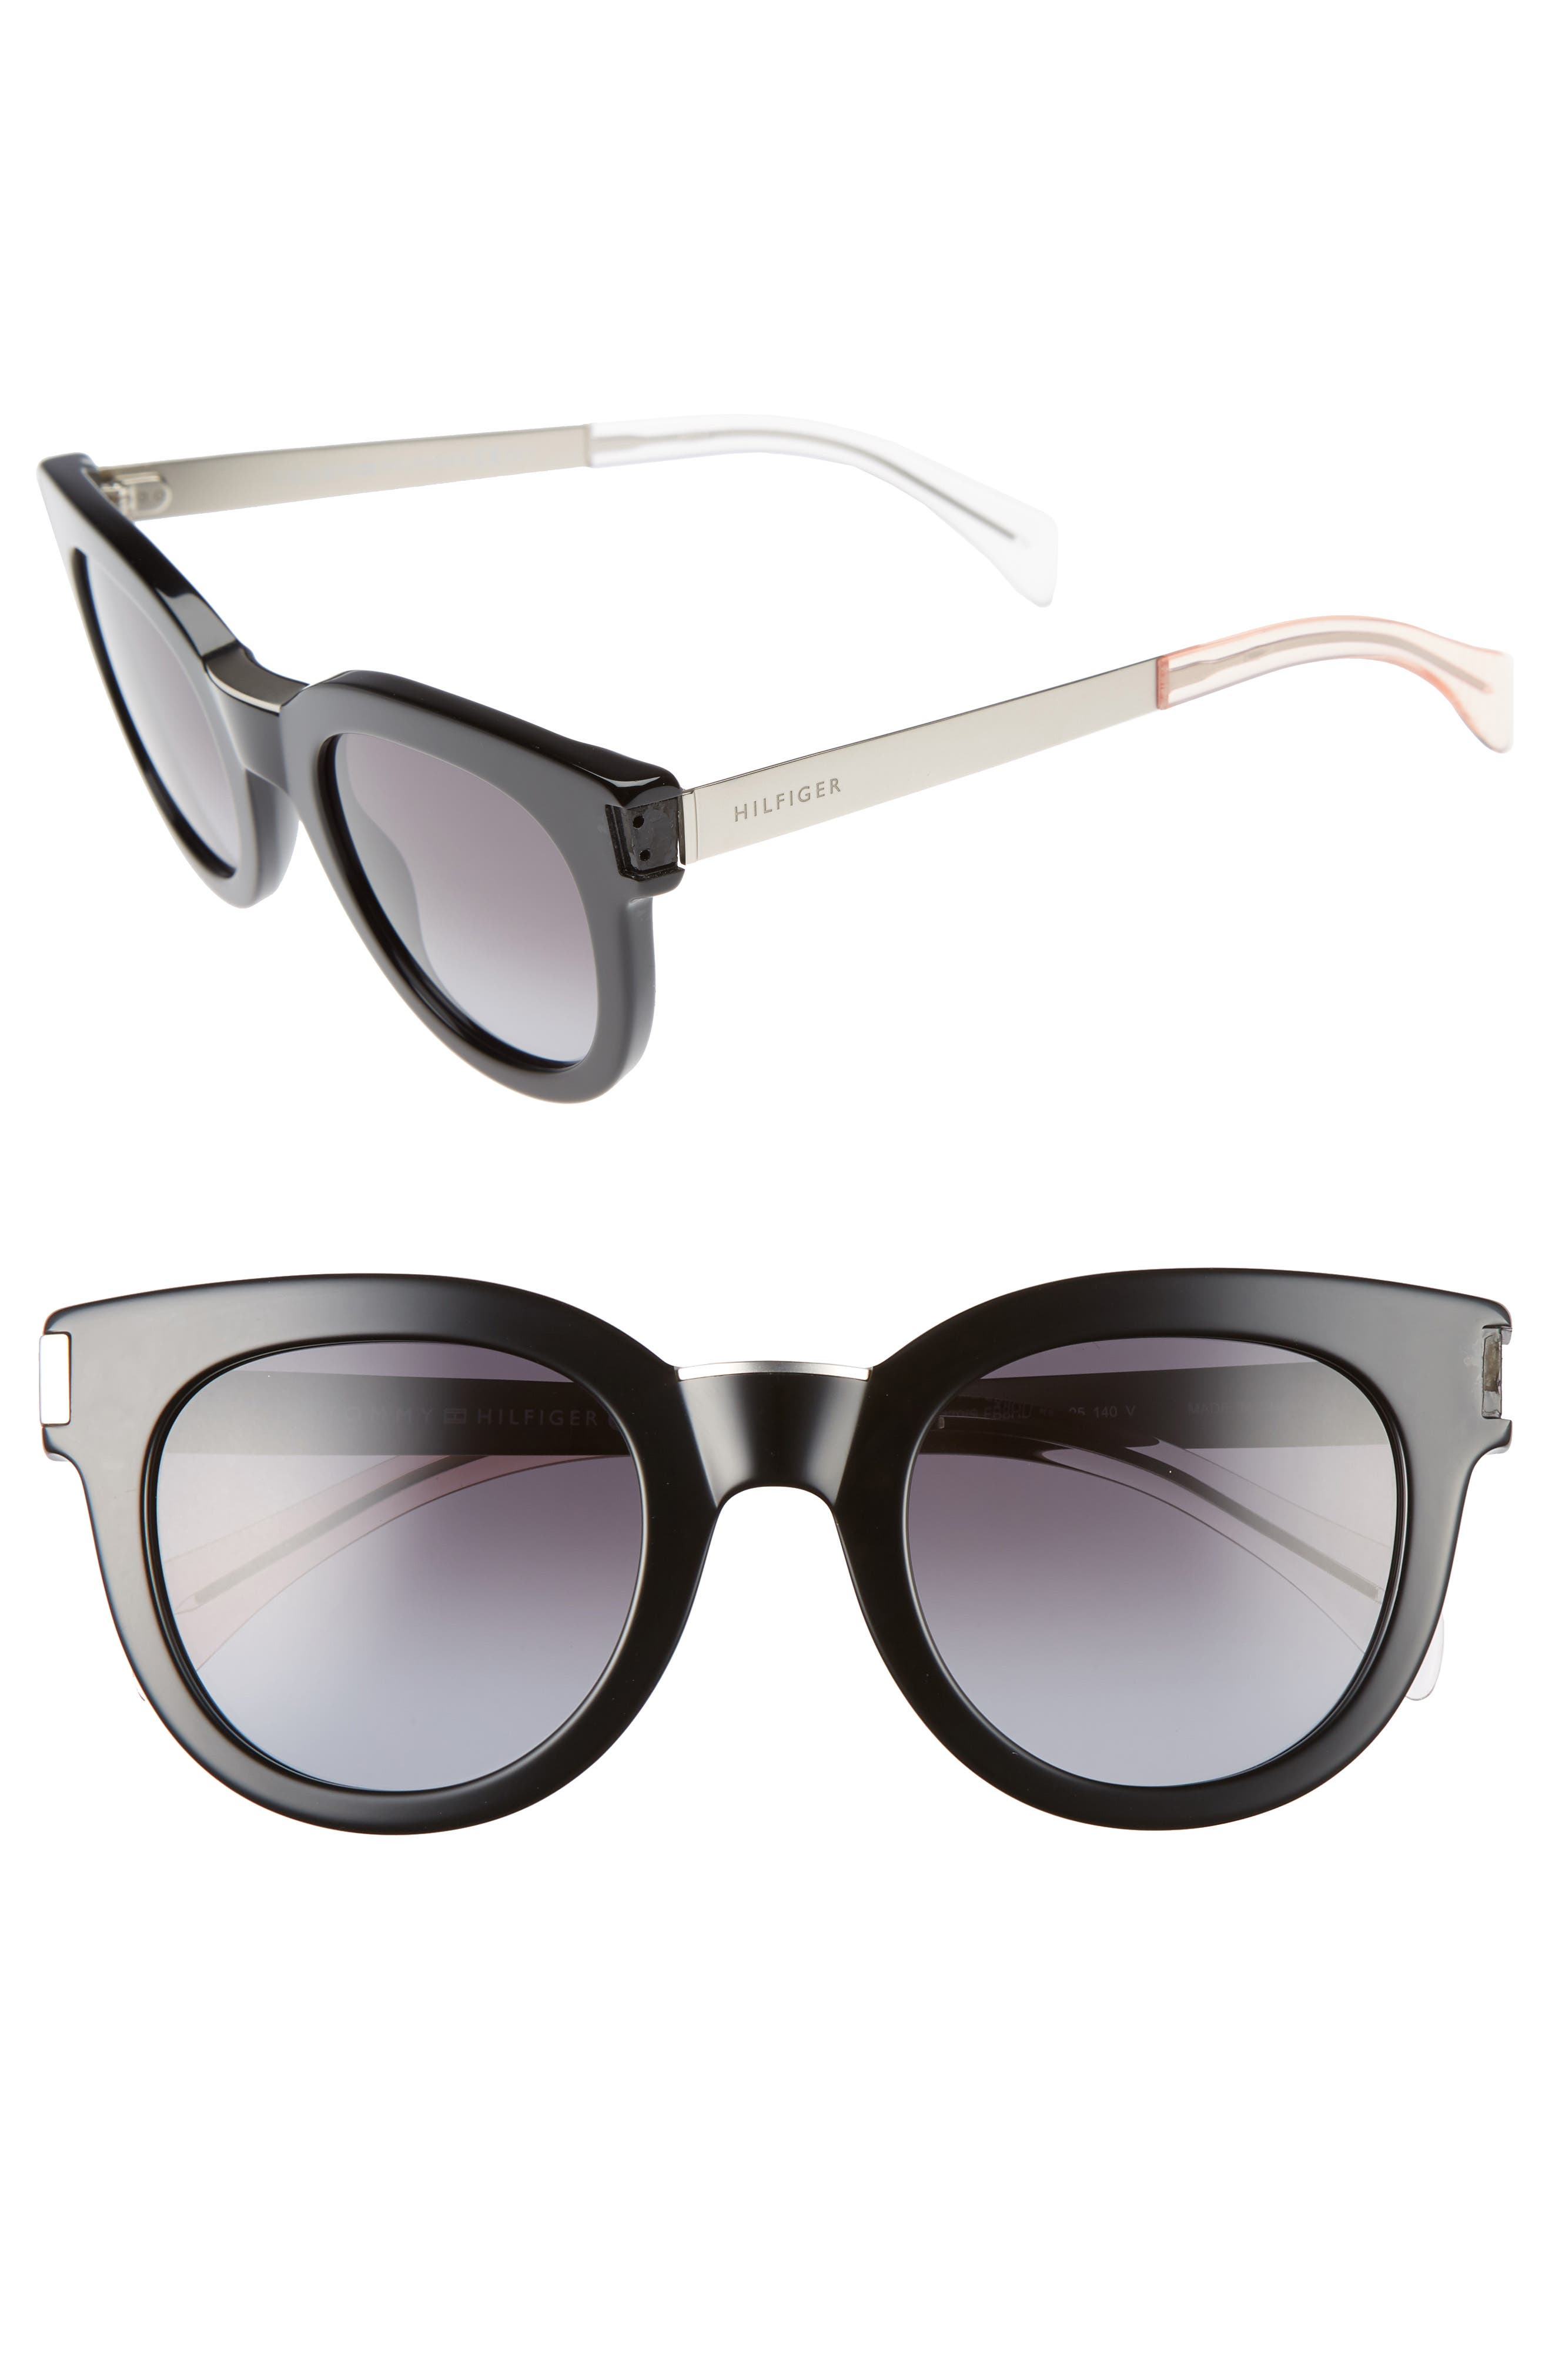 49mm Butterfly Sunglasses,                             Alternate thumbnail 2, color,                             001